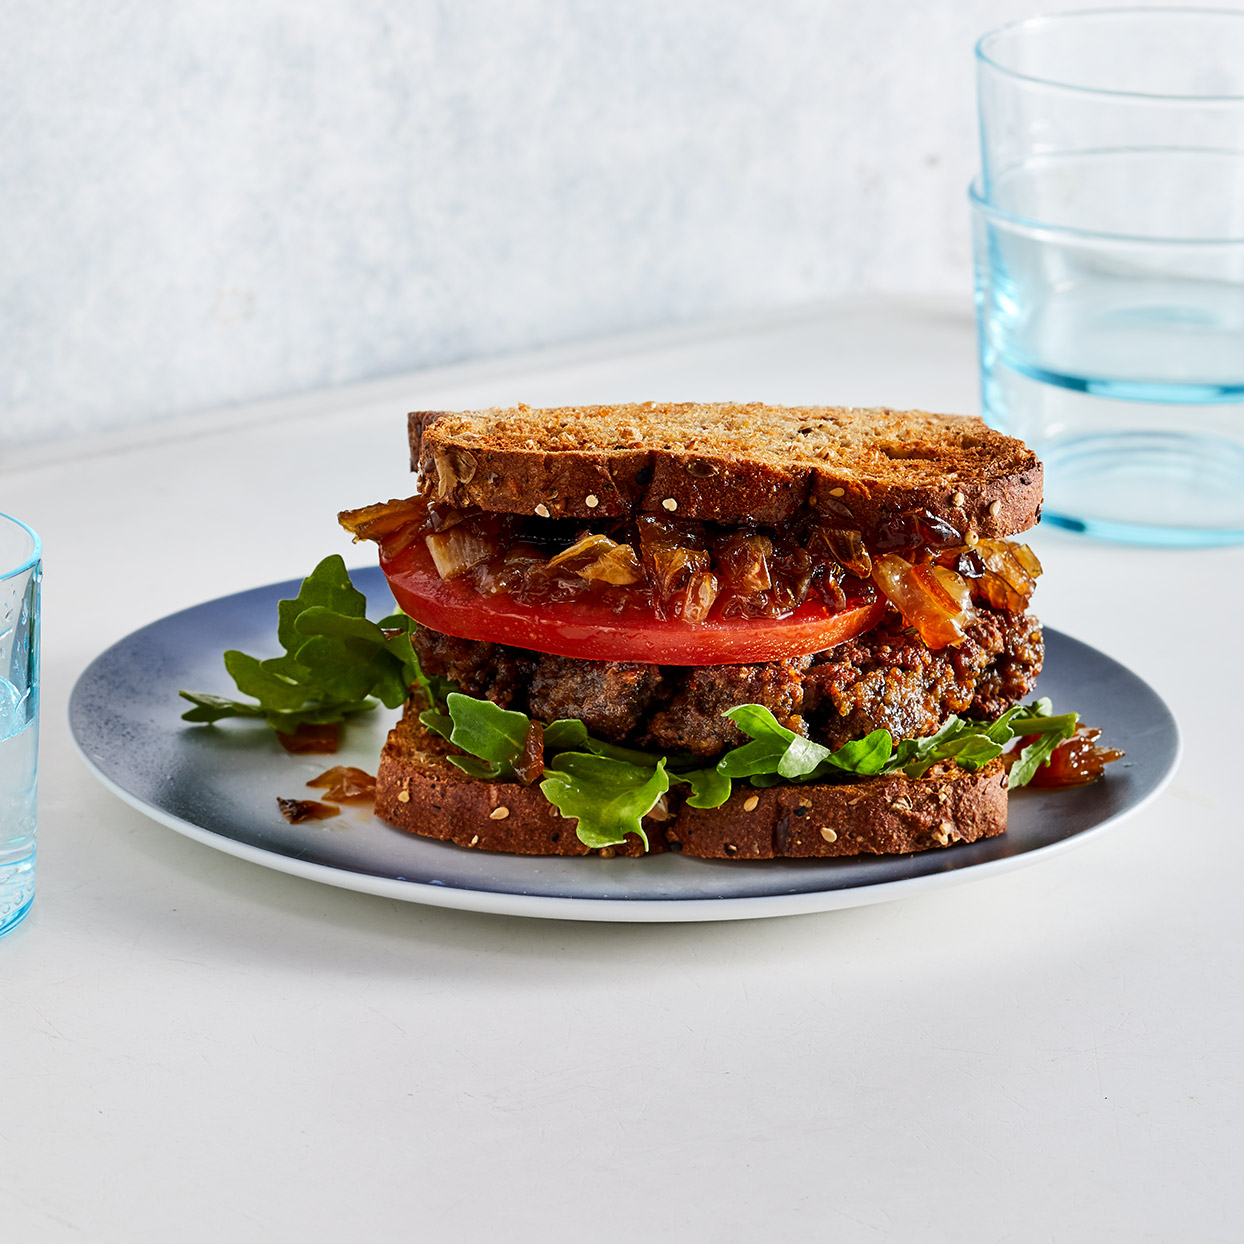 Learning how to make smashed burgers is as simple as its name. Smashing burgers into thin patties not only makes them quick-cooking, it also creates irresistible crispy edges. Topping them with the caramelized onion relish adds extra deliciousness. Source: EatingWell Magazine, March 2020